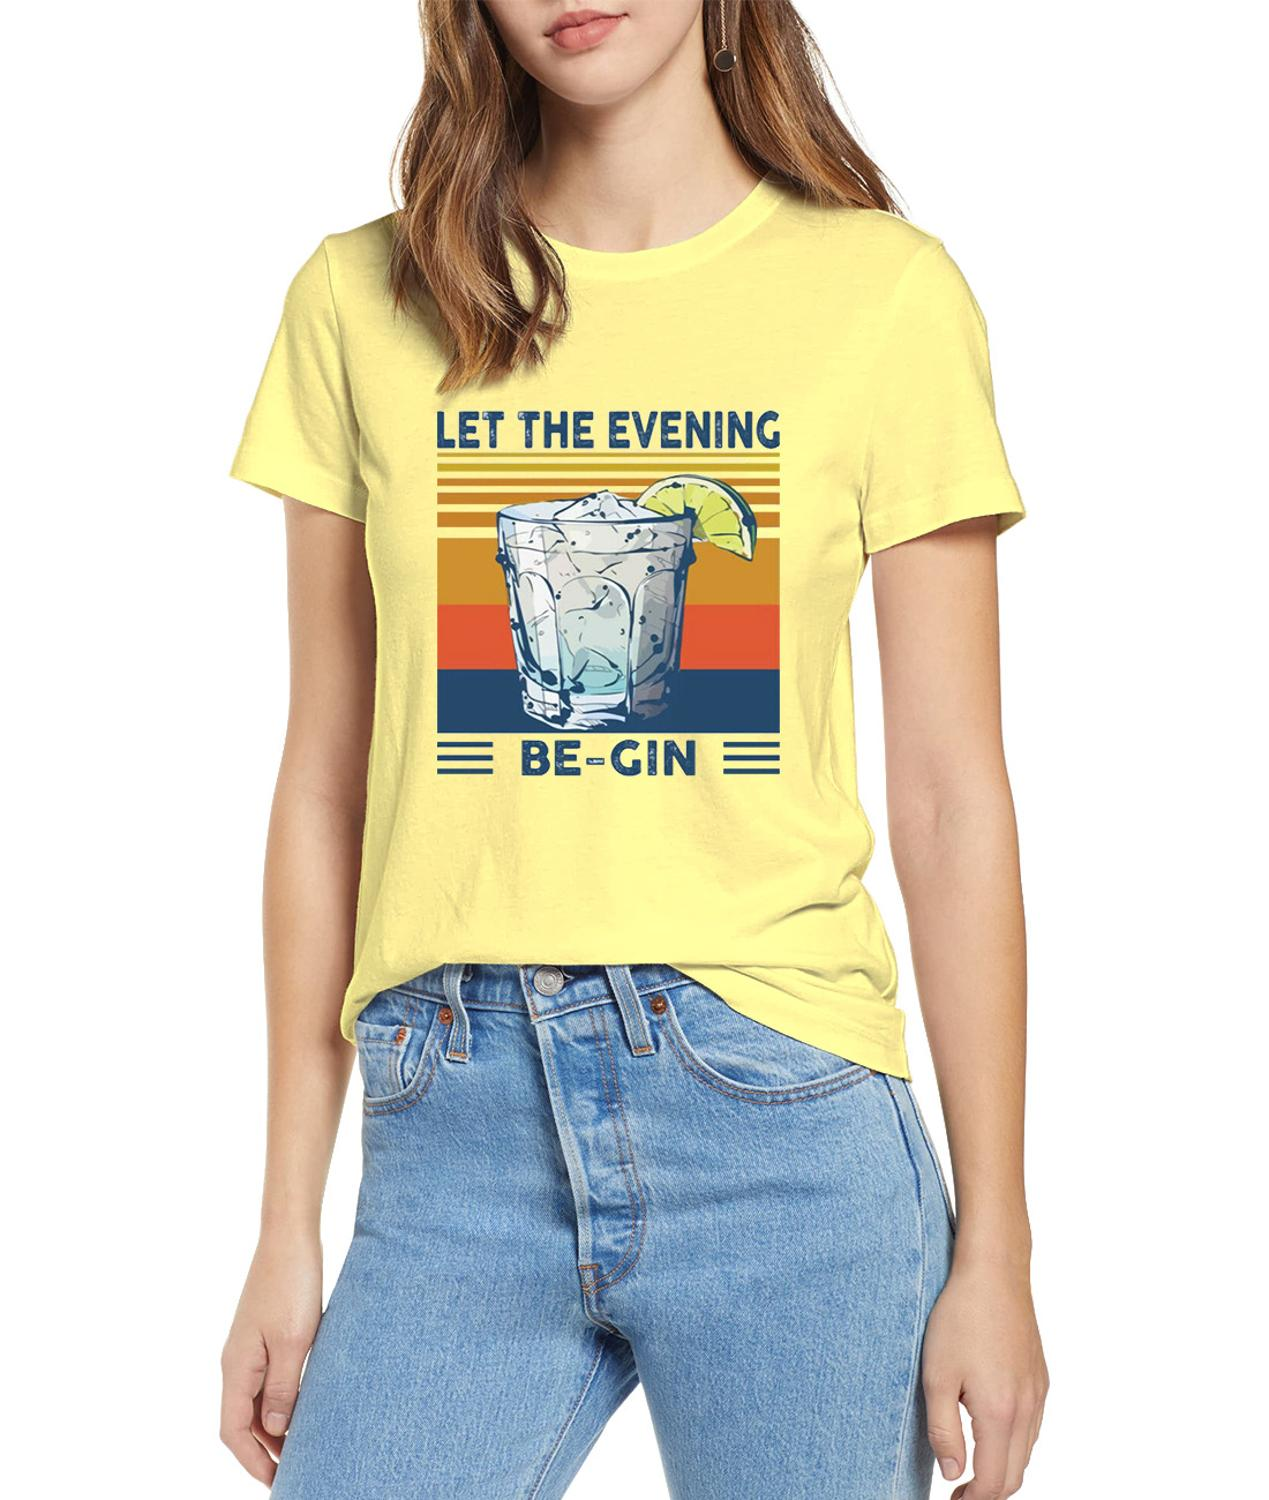 Martini Cocktail Let The Evening Be Gin Funny Vintage Men's O-Neck T-Shirt Cotton Tee new fashion women's thin sweaters image